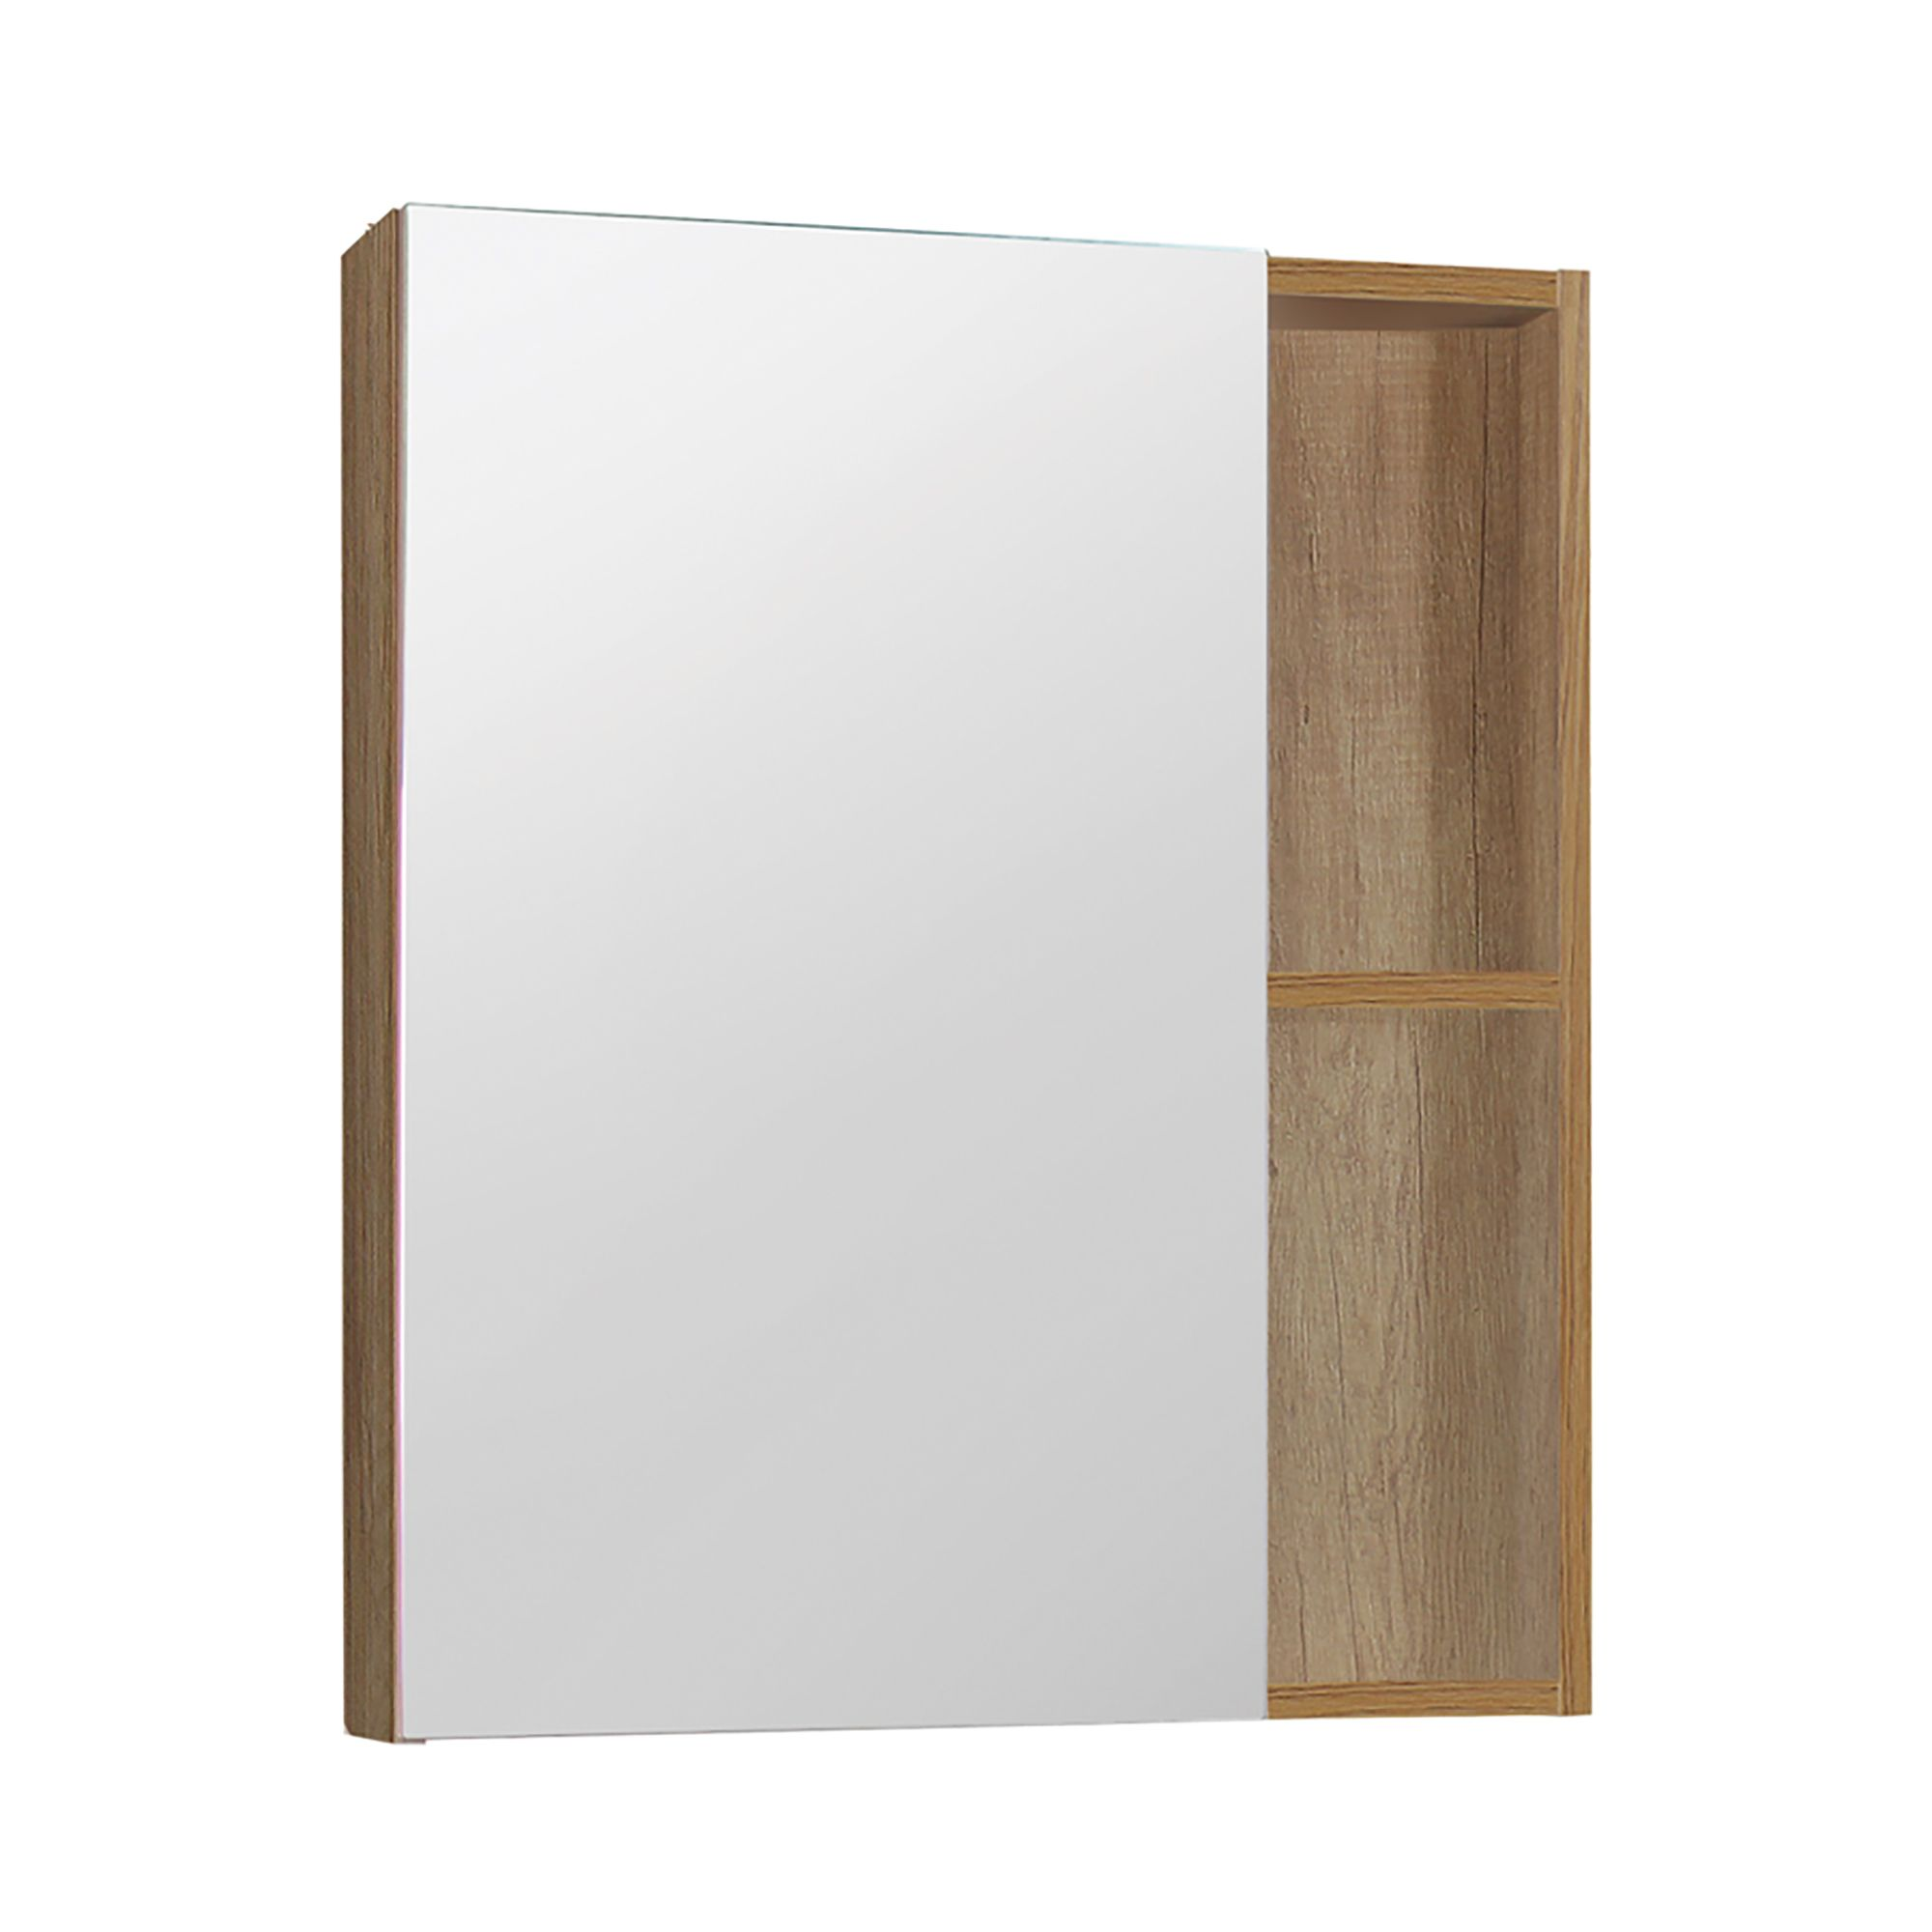 Dolphin Plumbing 24 4 Natural Wooden Finish Medicine Cabinet Bathroom Mirrors Kent Building Supplies